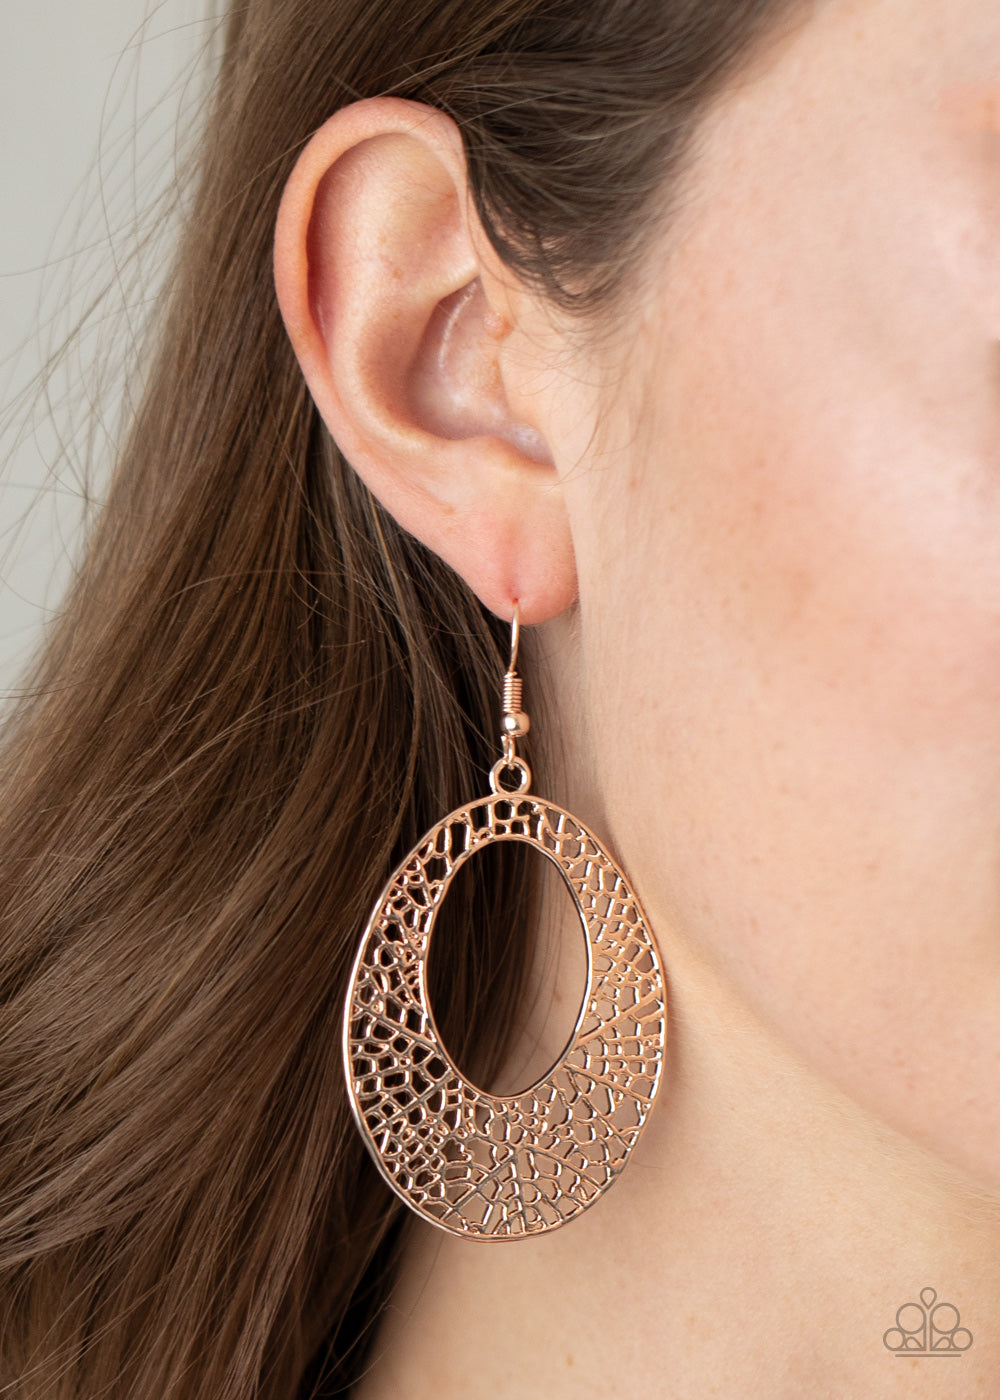 Paparazzi Accessories Serenely Shattered - Rose Gold Earrings